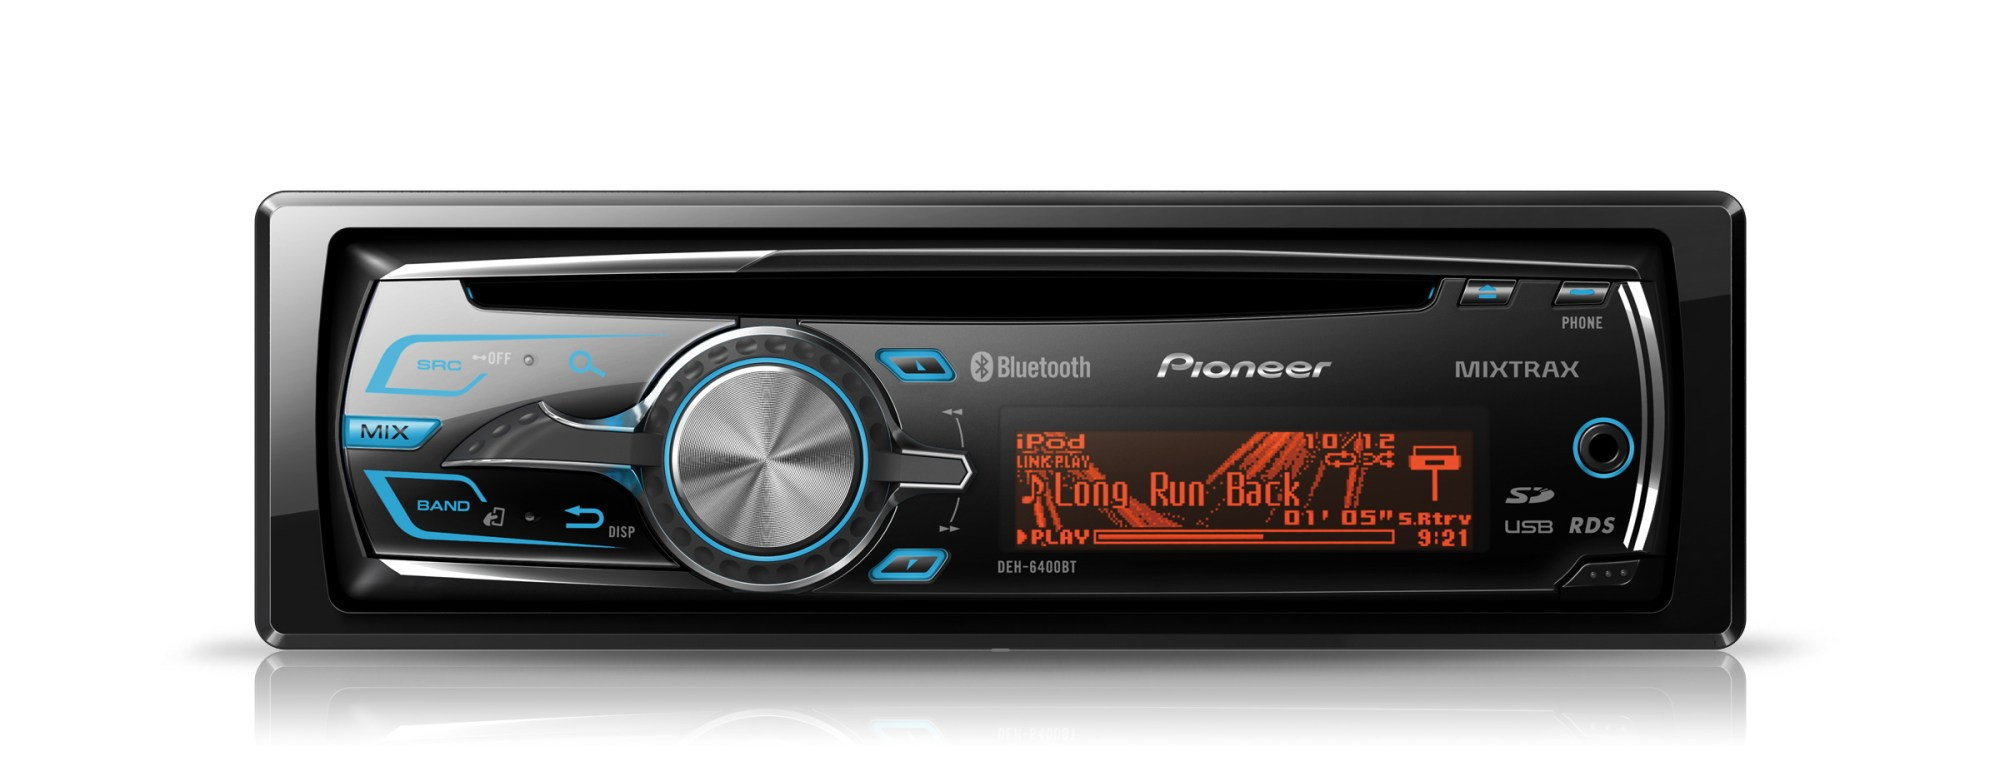 hight resolution of stock image of the pioneer deh 6400bt